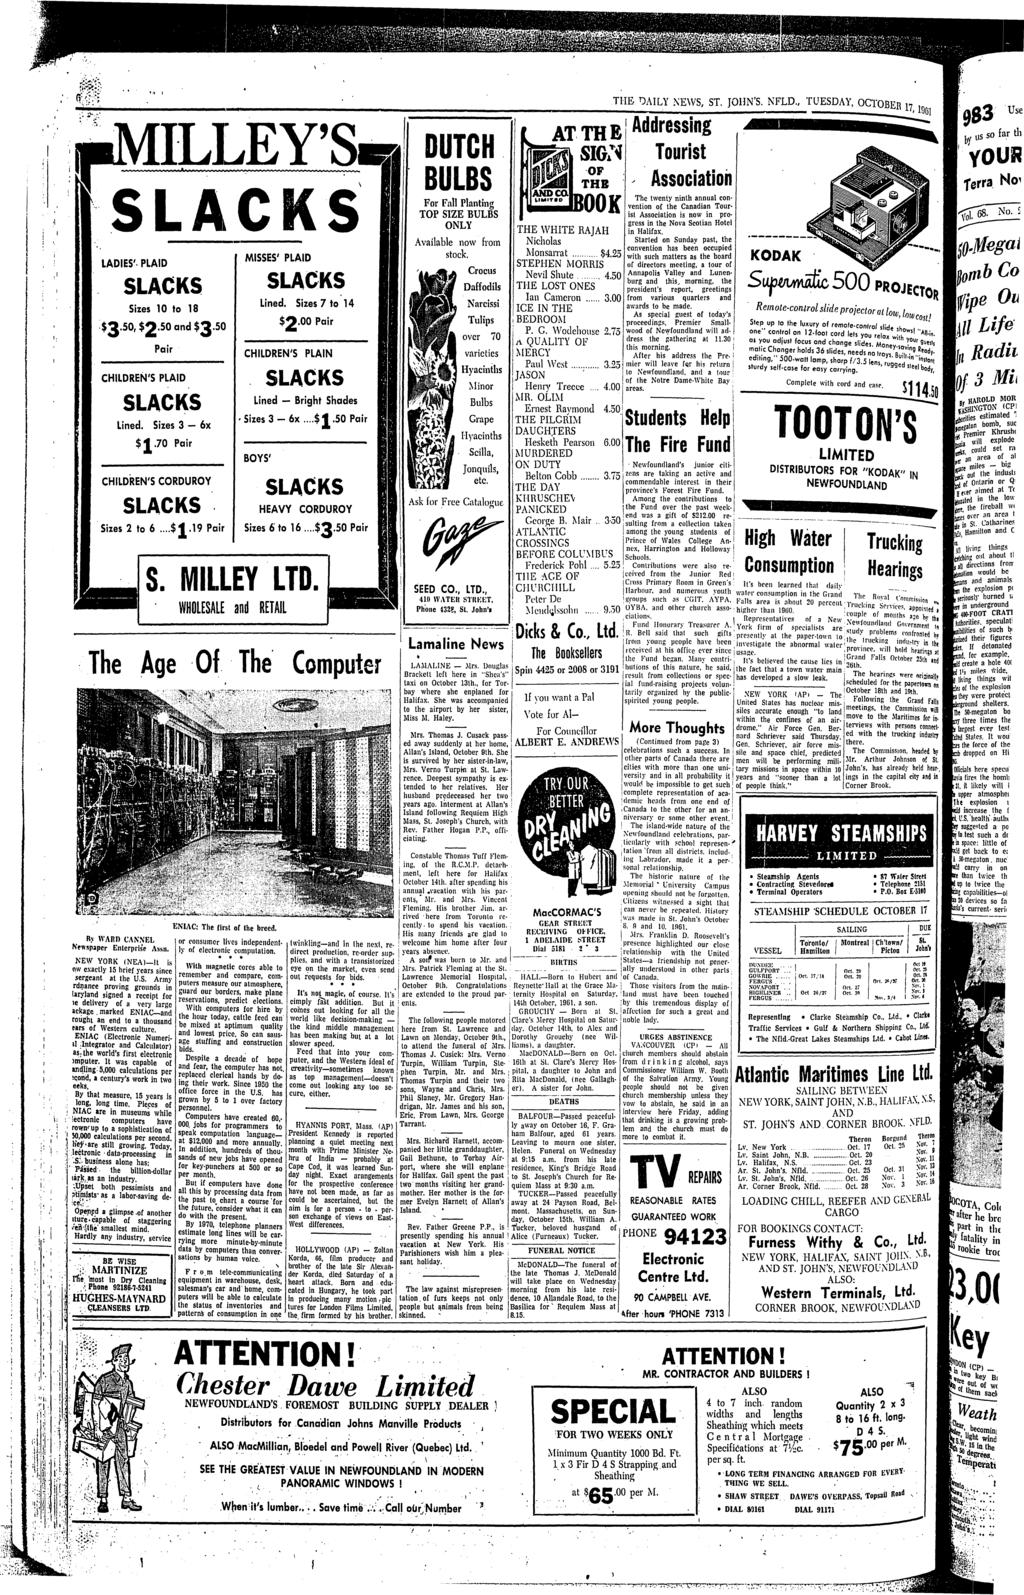 THE DAILY NEWS, ST. JOHN'S, NFLD., TUESDAY, OCTOBER 17, Into B. a ...